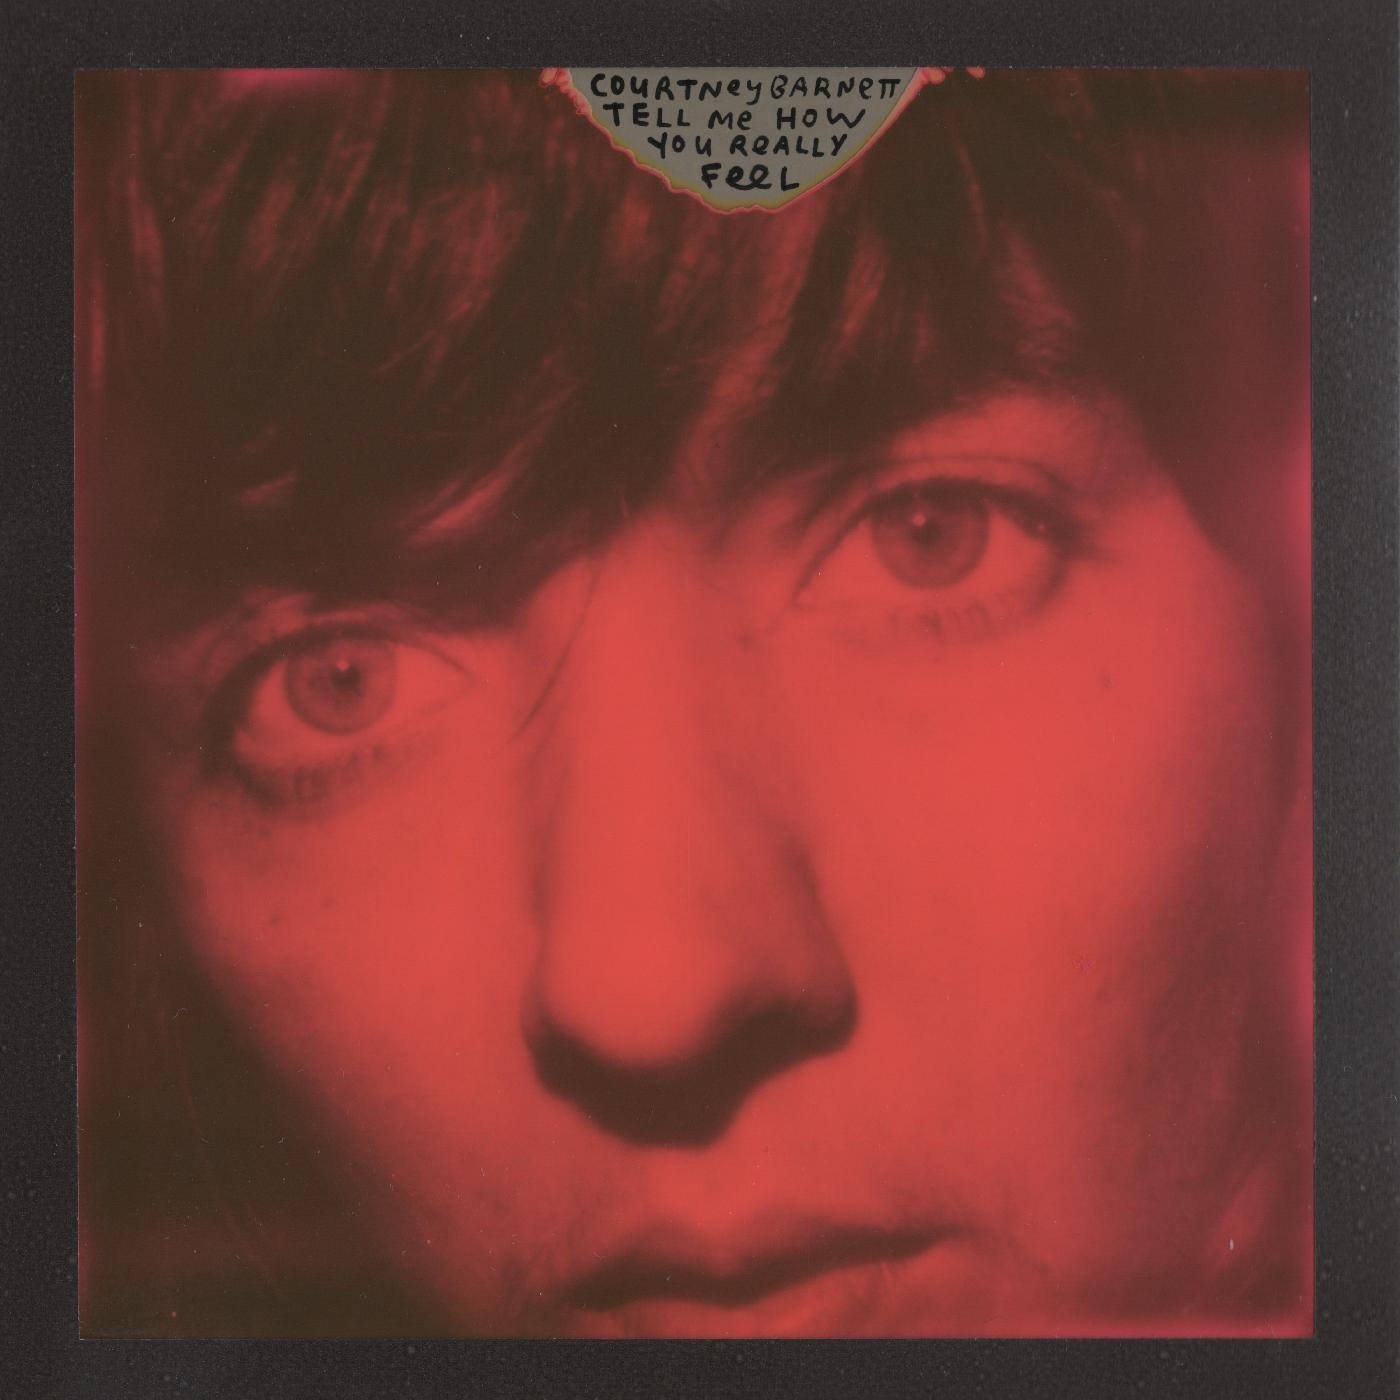 ãcourtney barnett tell me how you really feel lyricsãã®ç»åæ¤ç´¢çµæ